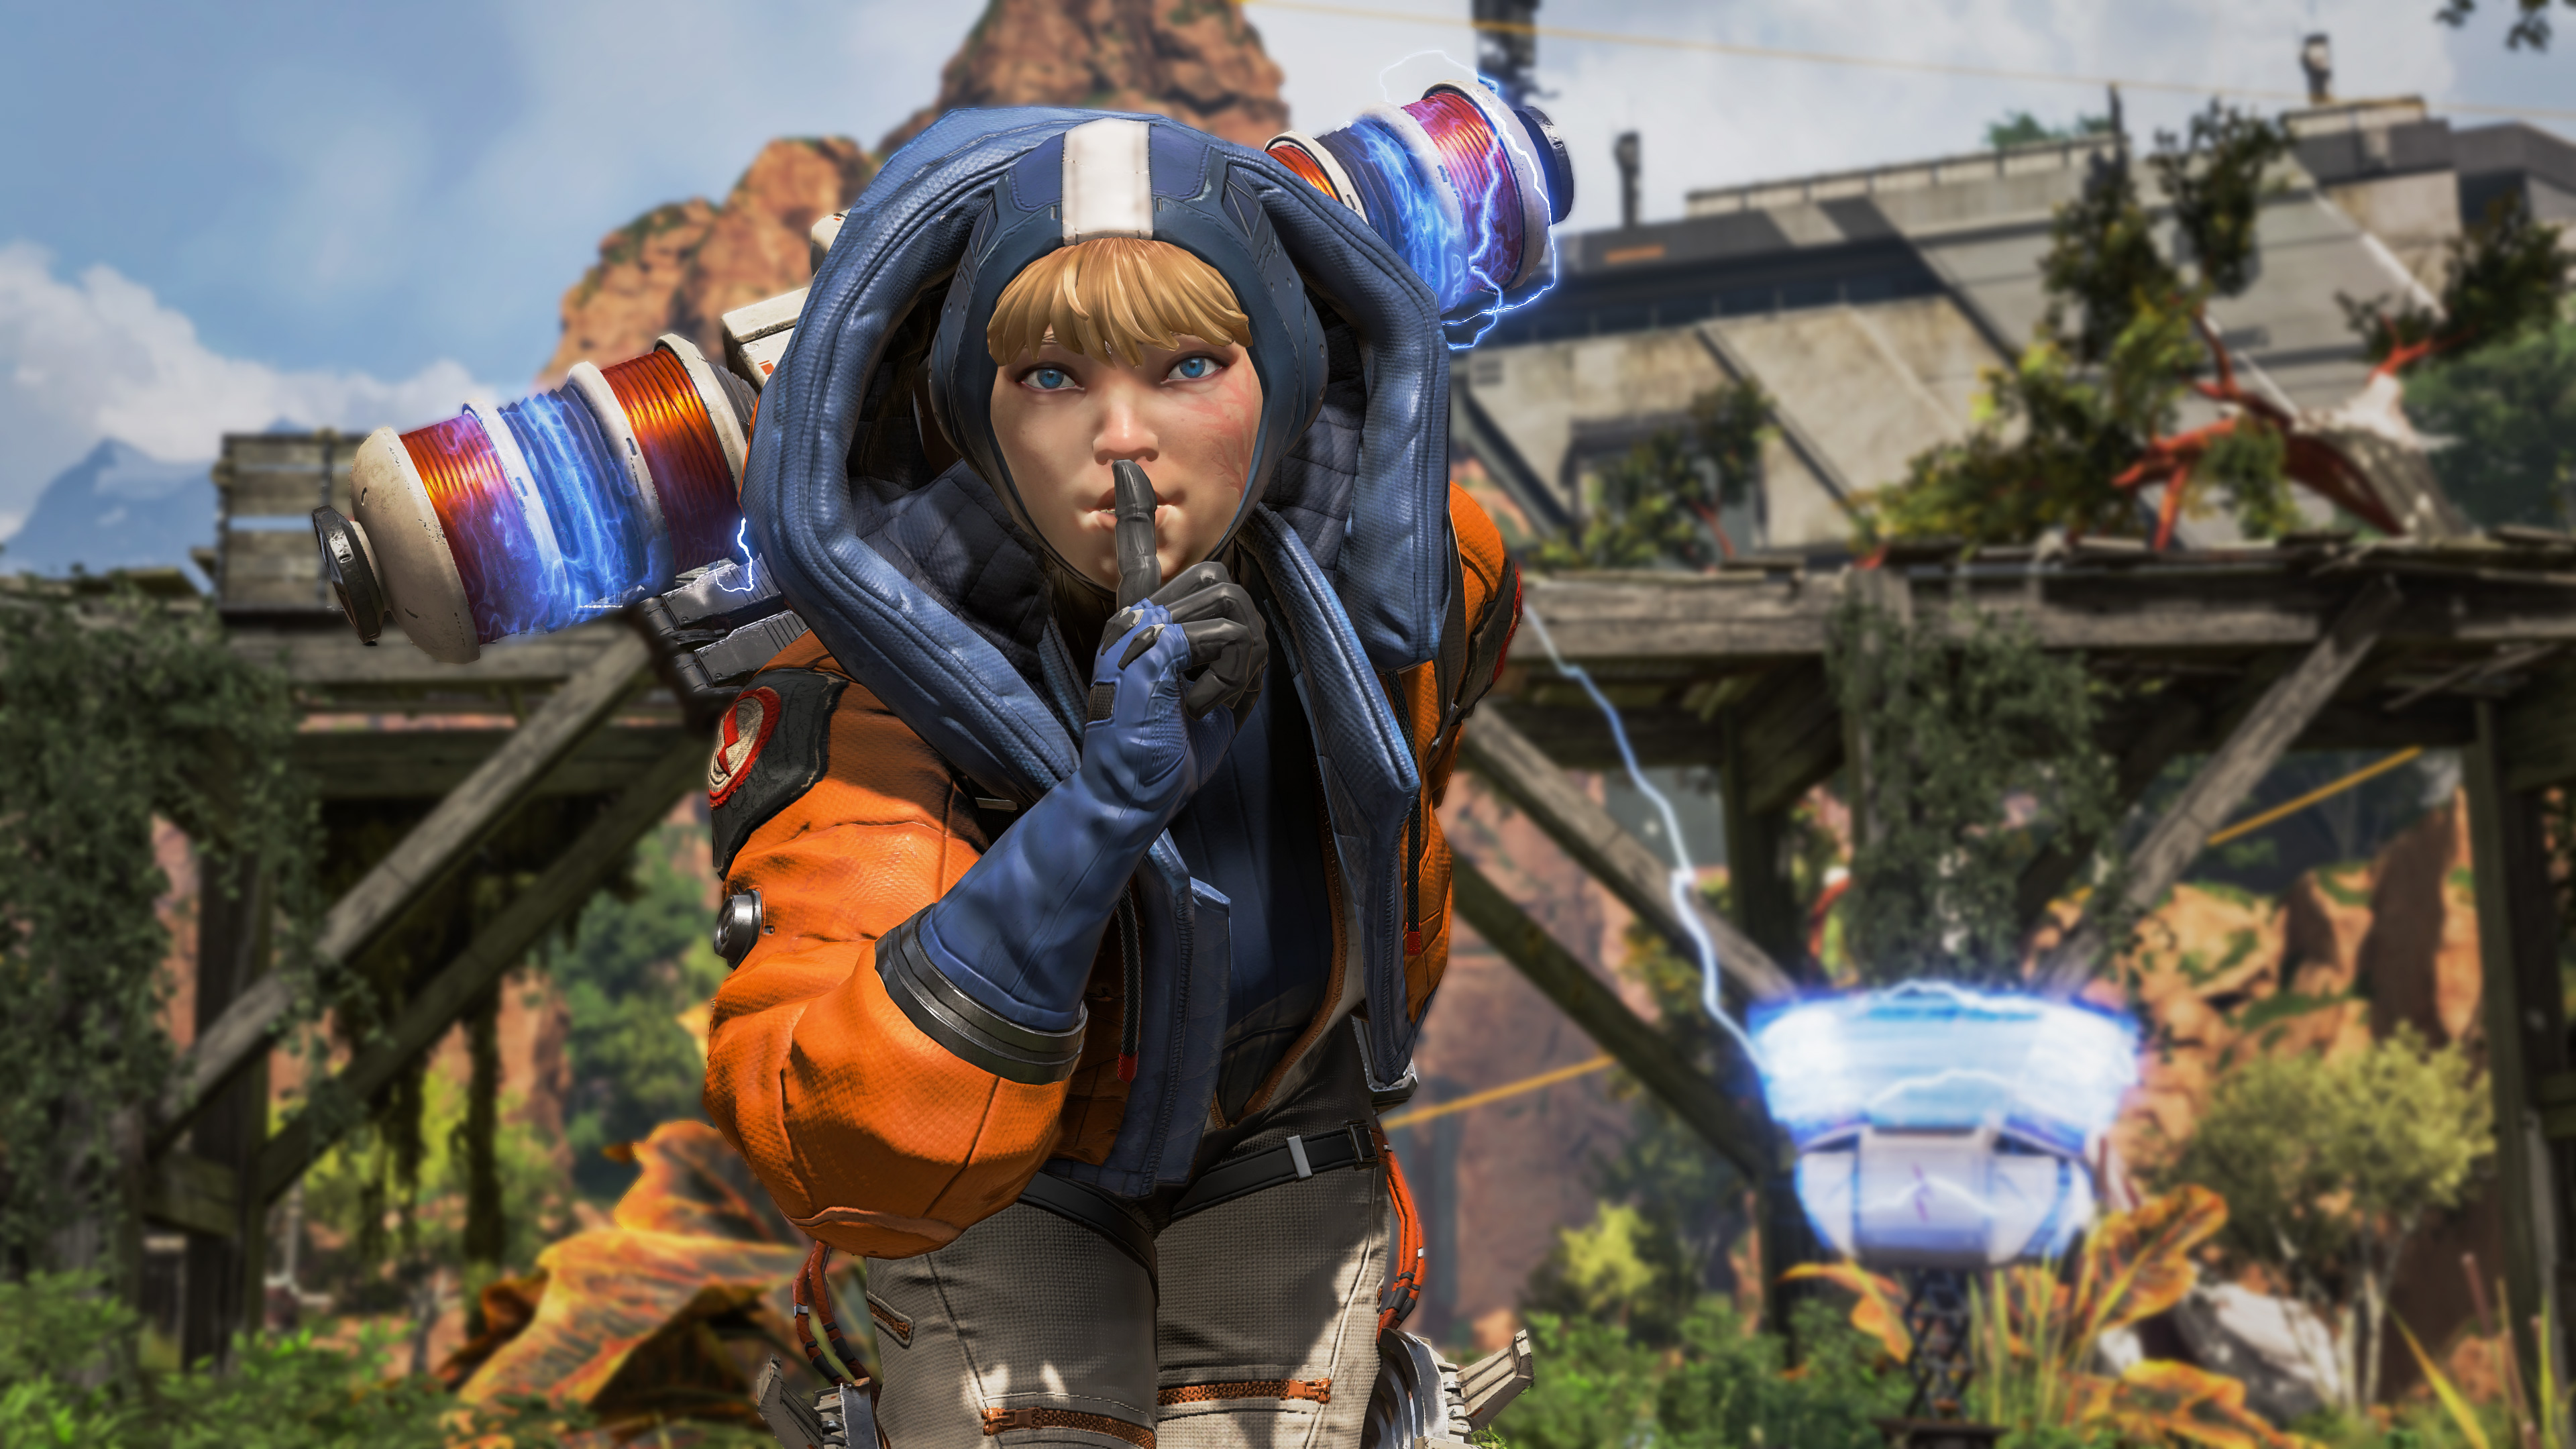 Respawn CEO apologizes for devs who insulted Apex Legends fans